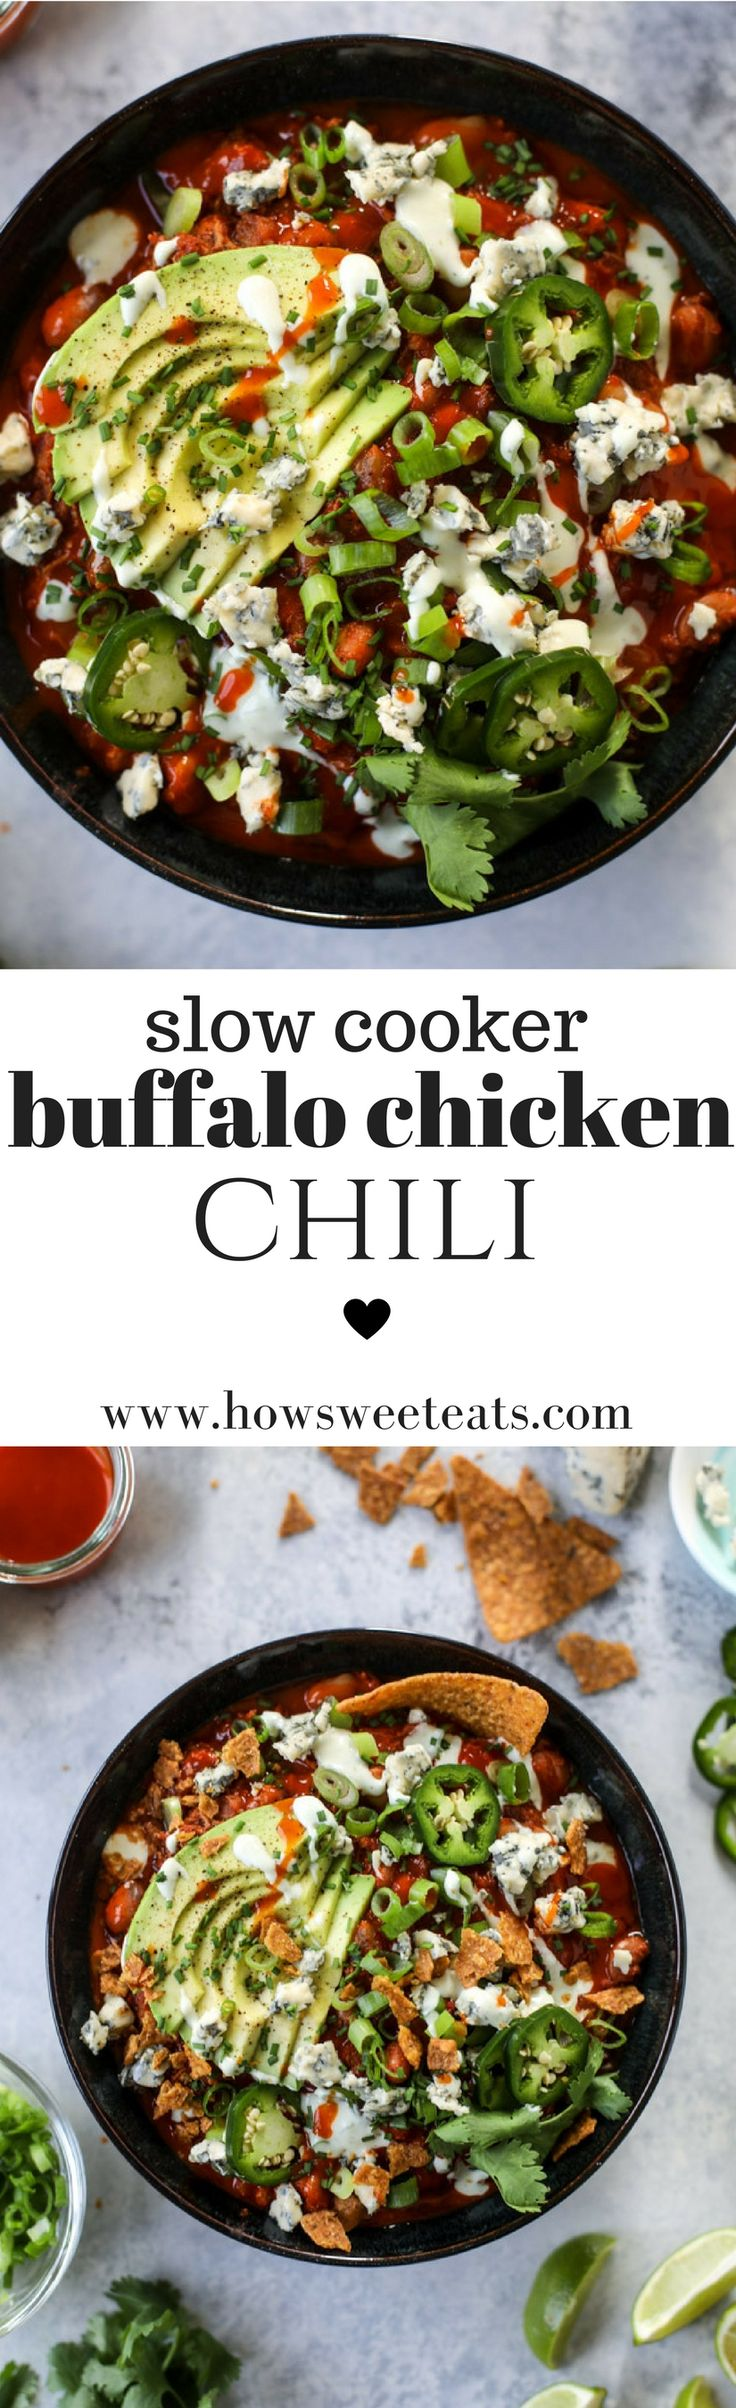 Slow Cooker Buffalo Chicken Chili I @howsweeteats